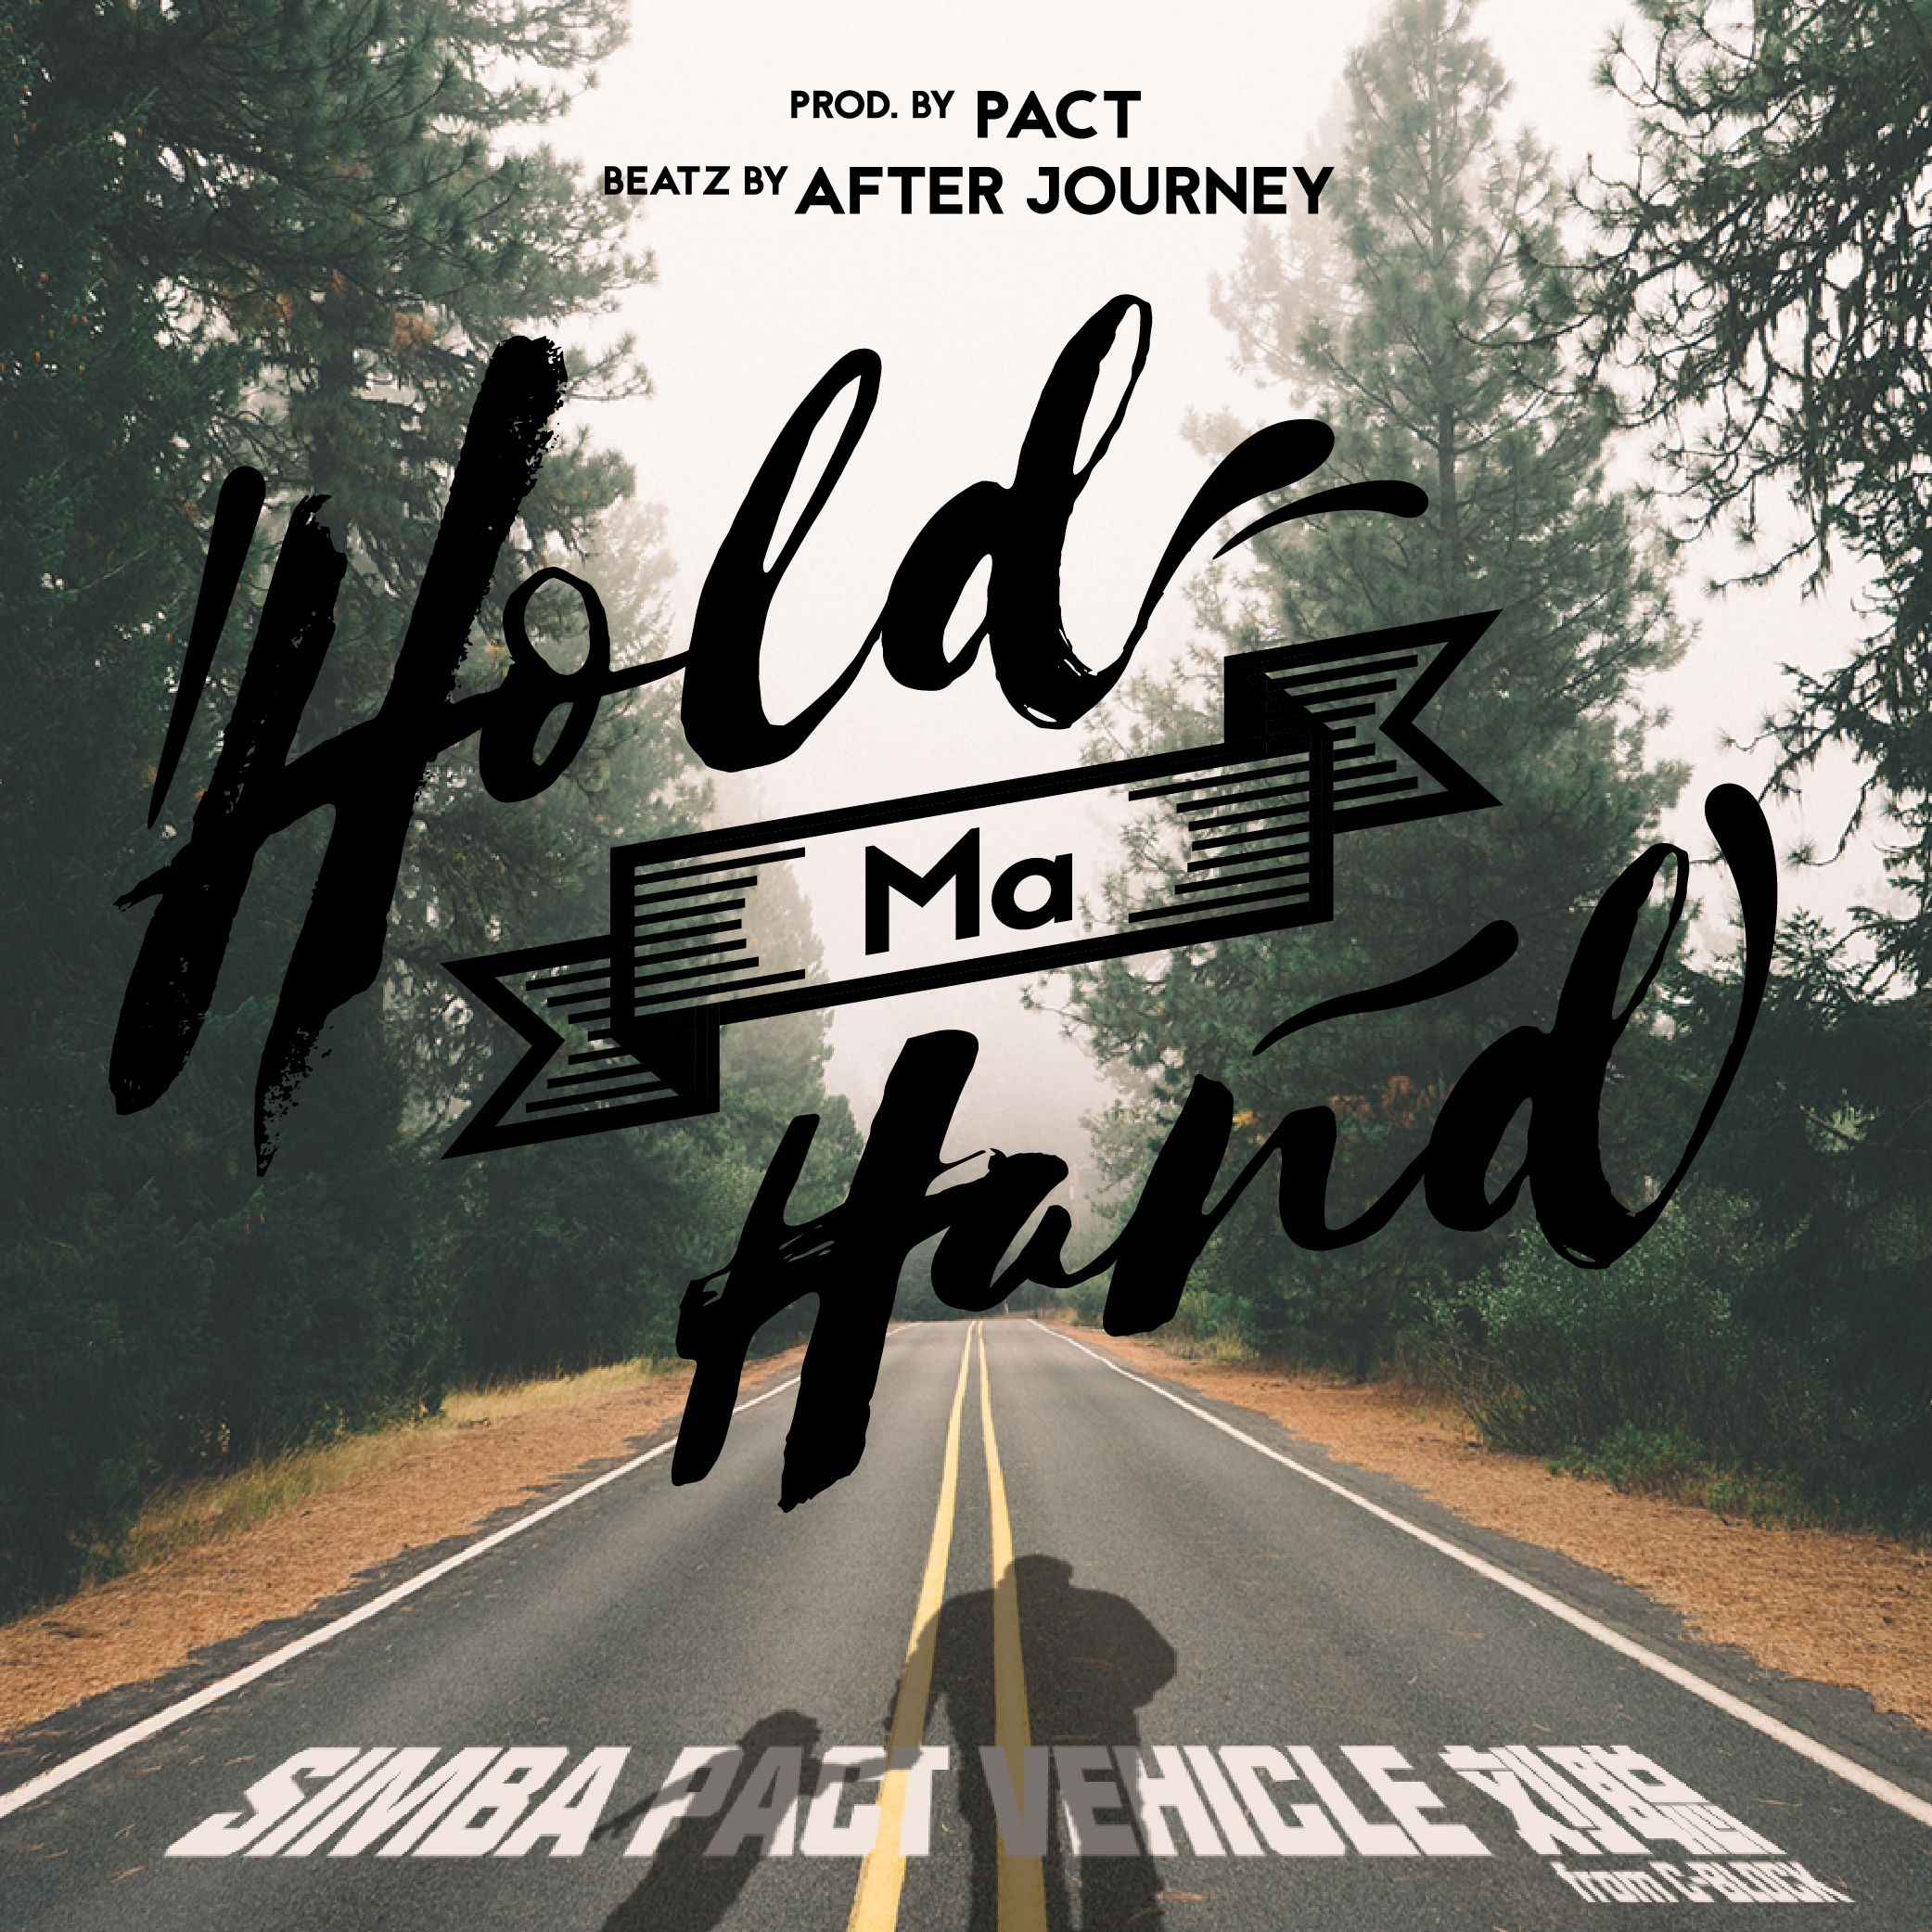 2 Hold my hand